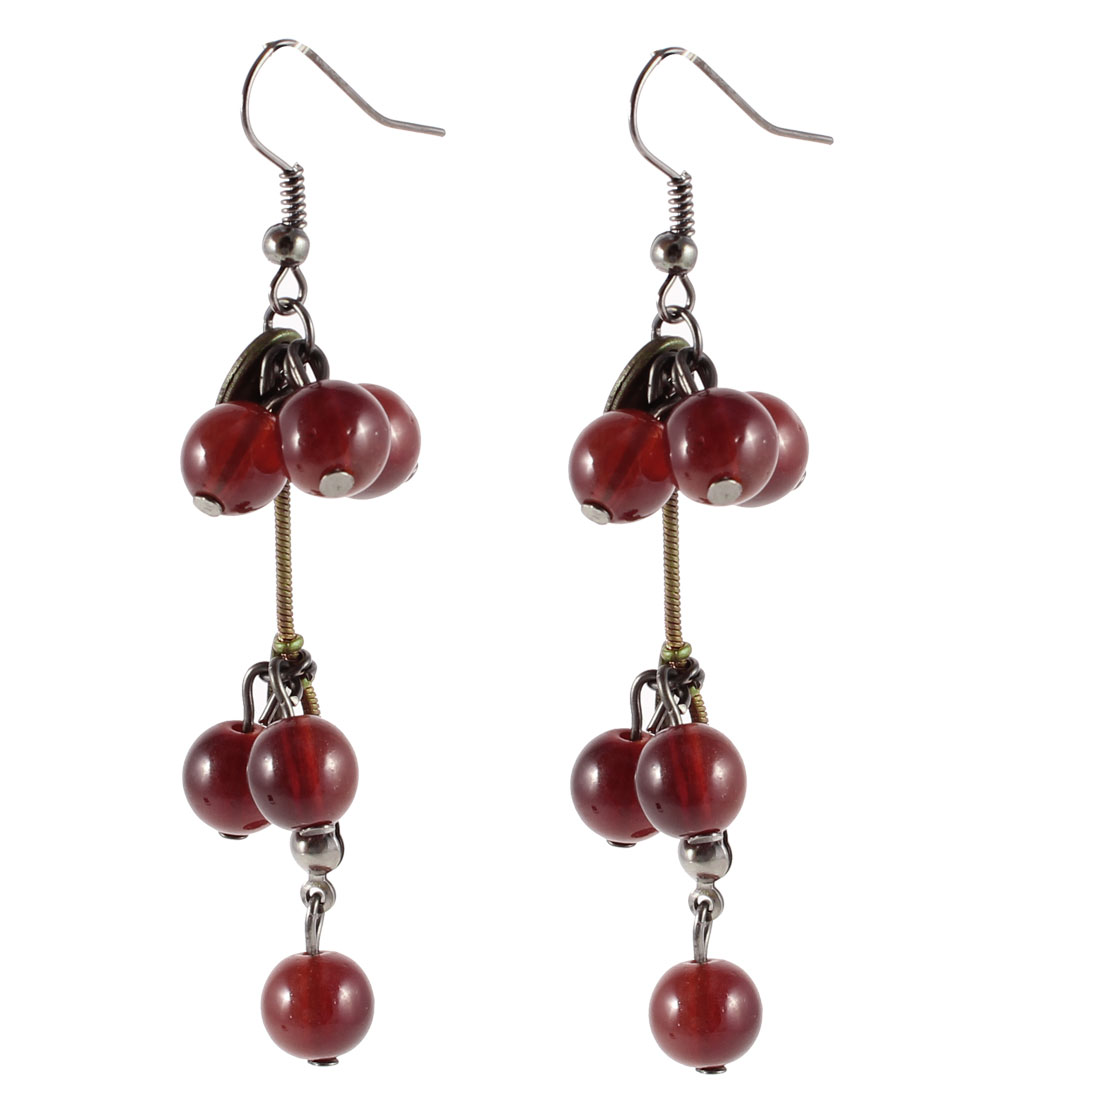 Burgundy Plastic Cherry Shape Dangling Fish Hook Earrings for Ladies